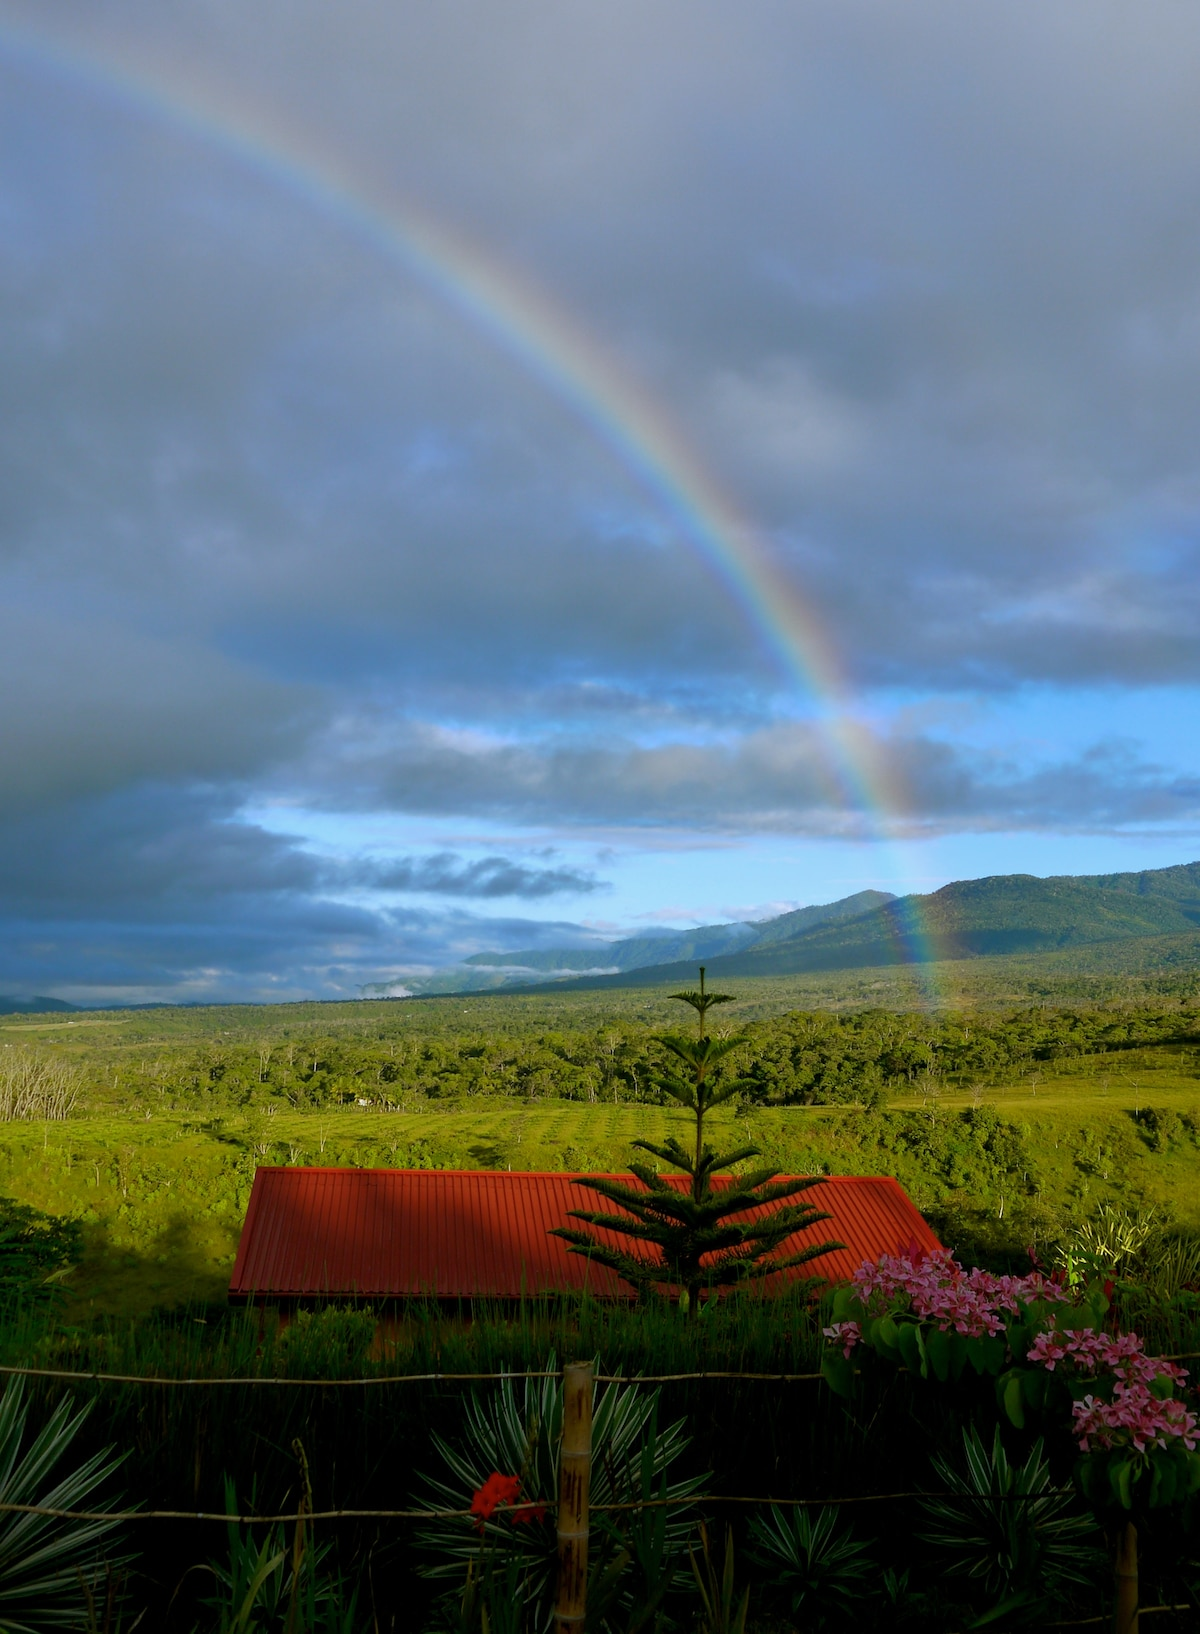 Somewhere over the rainbow cabins are cool.